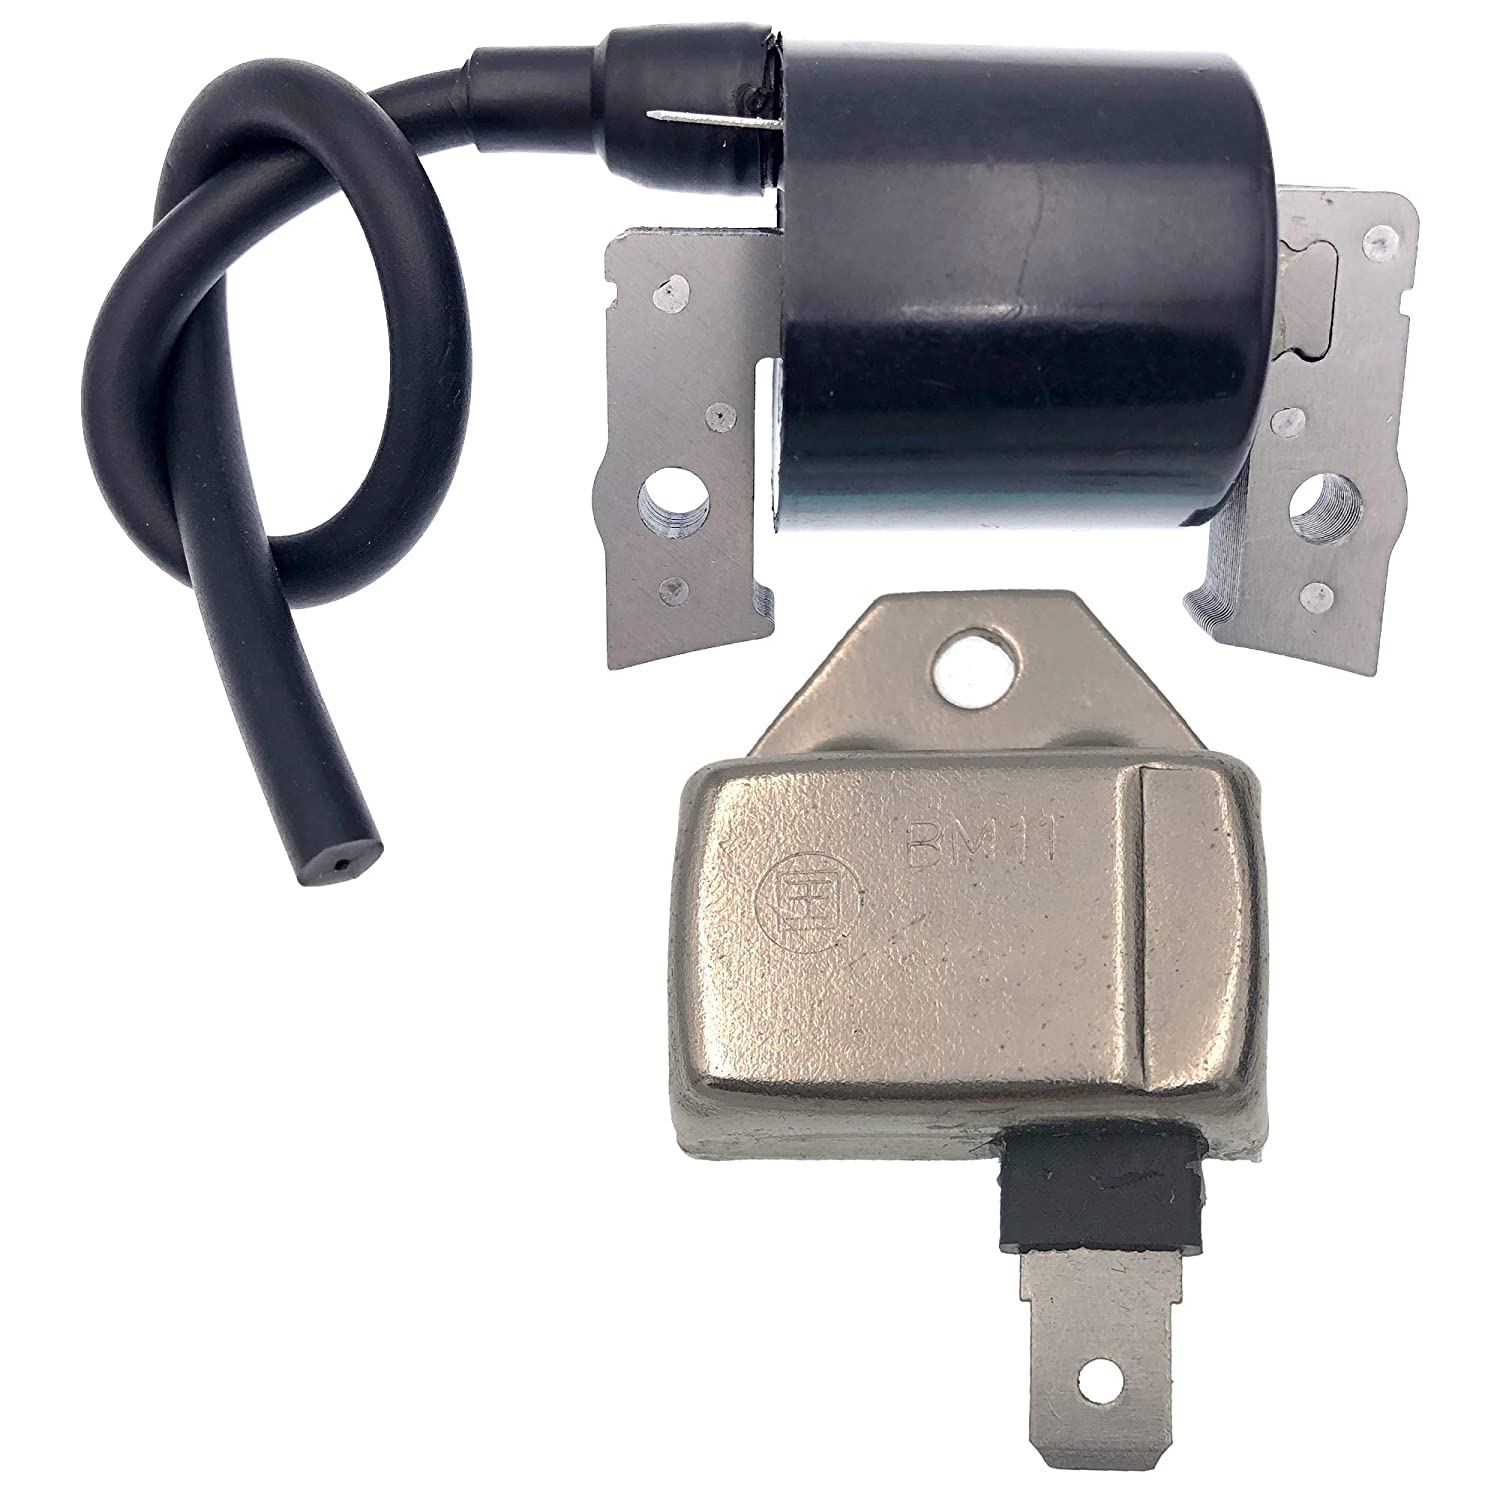 21121-2070 Ignition Coil for Kawasaki Engine 21119-2161 Igniter Module fits John Deere Lawn Tractors AM109209 FC420V LX172 LX176 ZF-IG-A00471